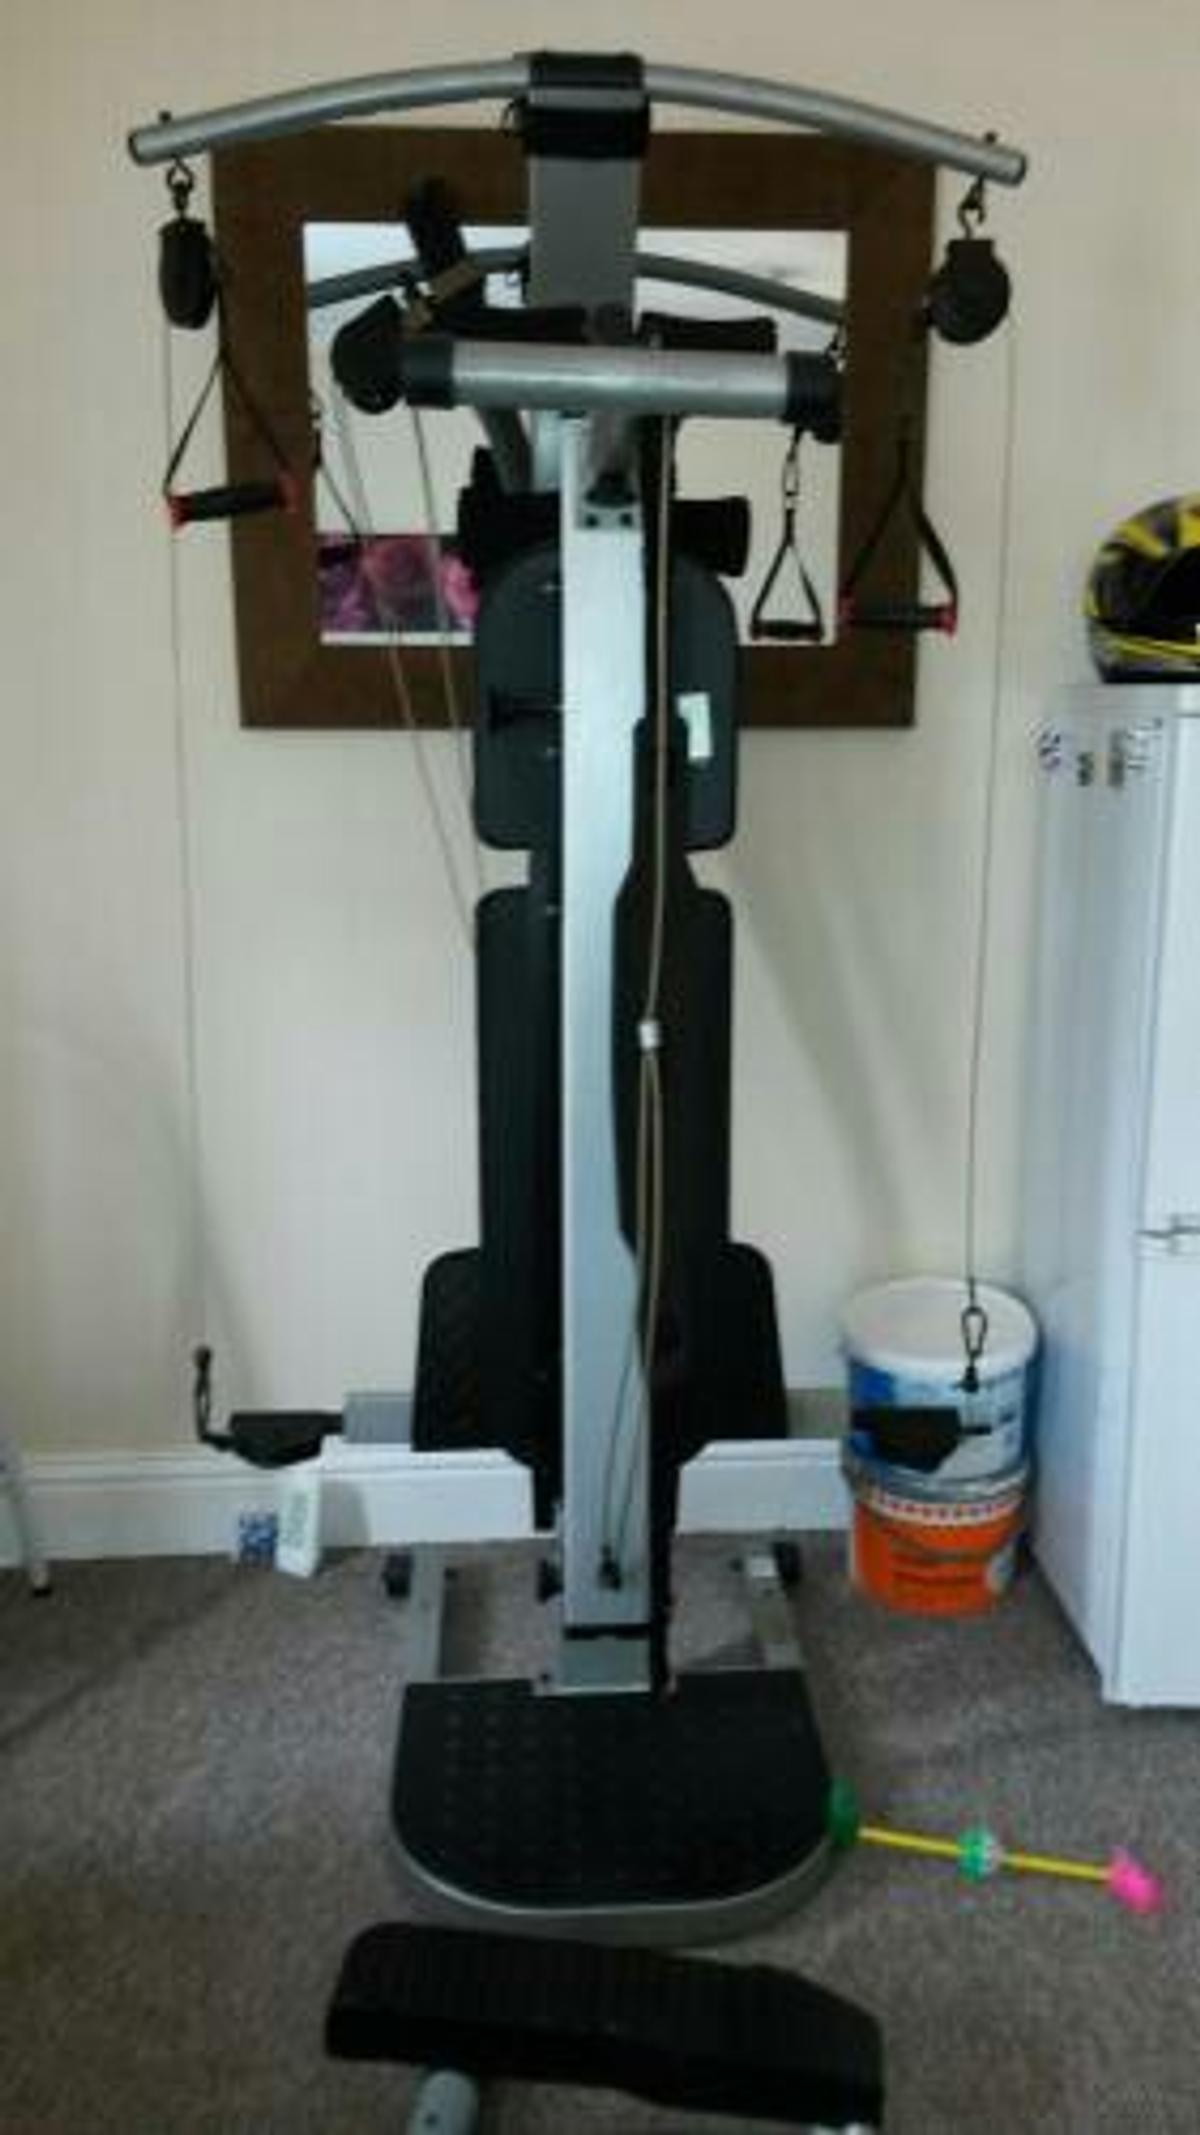 Weider cross bow legend multi gym in bn eastbourne for £